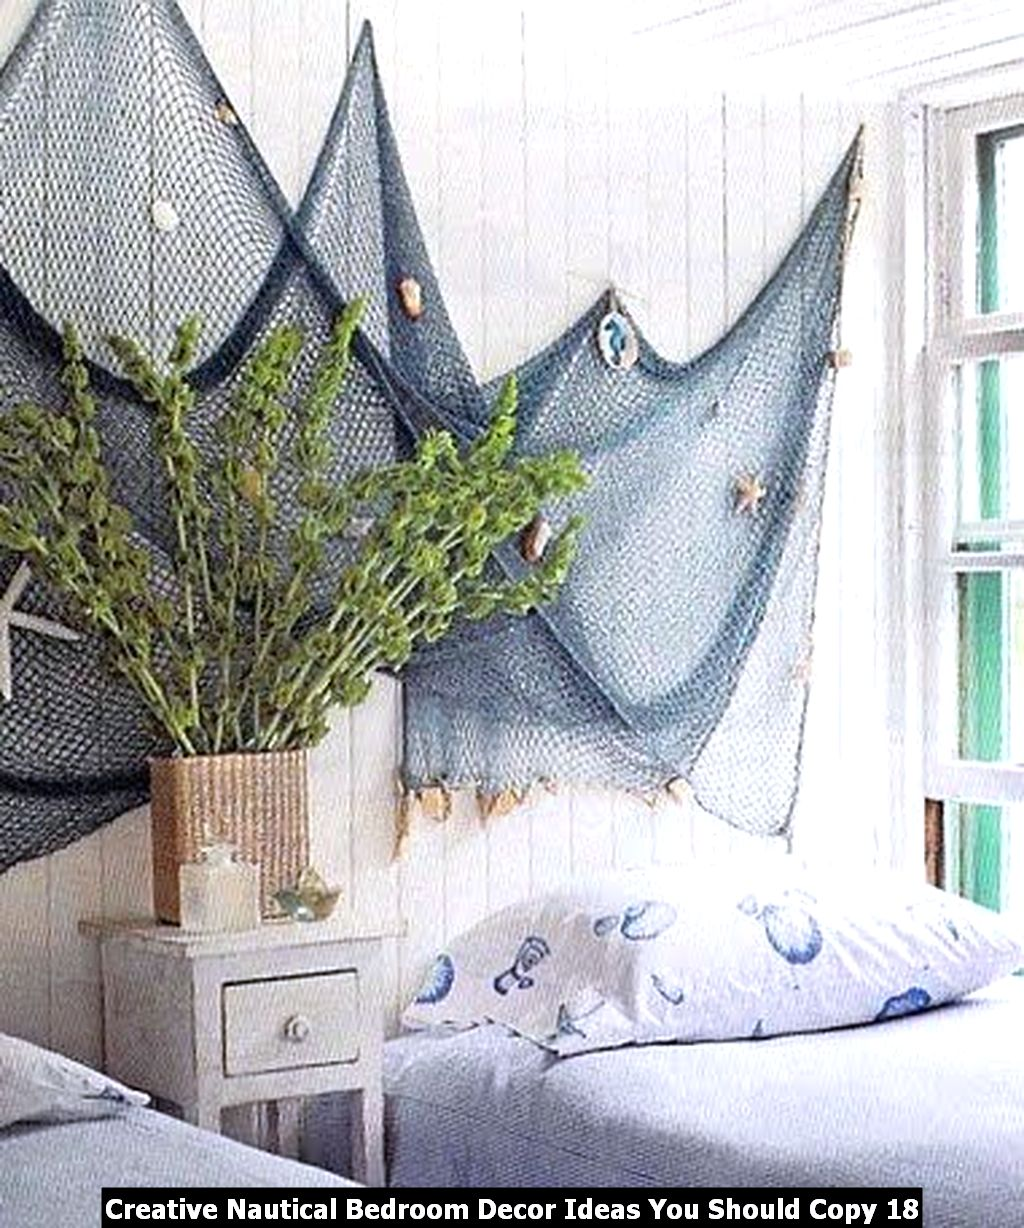 Creative Nautical Bedroom Decor Ideas You Should Copy 18